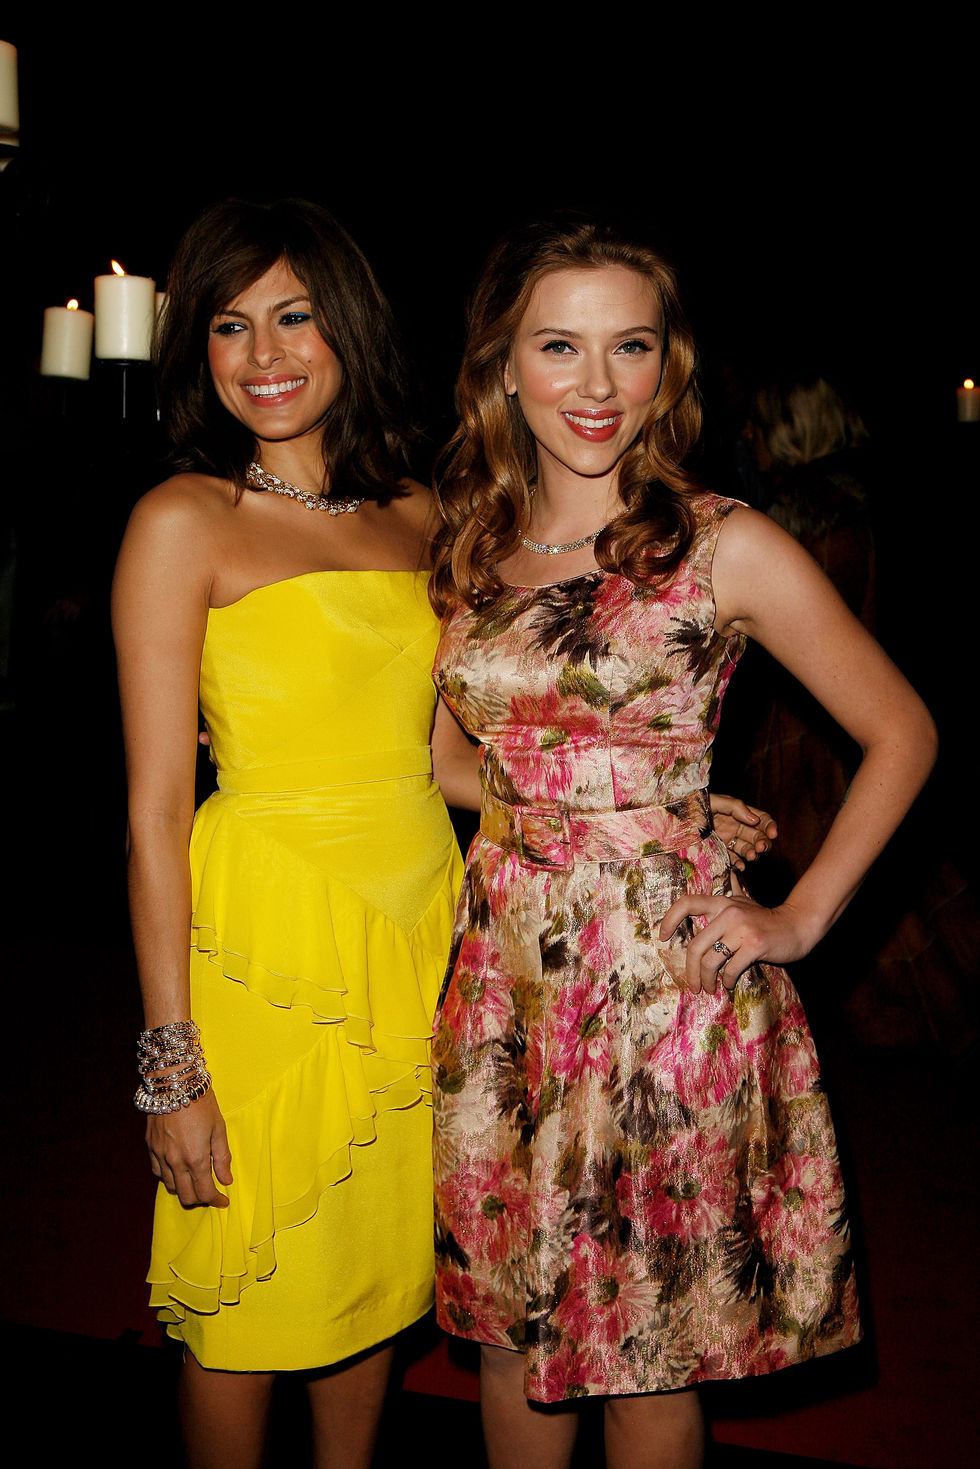 eva-mendes-and-scarlett-johansson-the-spirit-launch-party-in-london-03